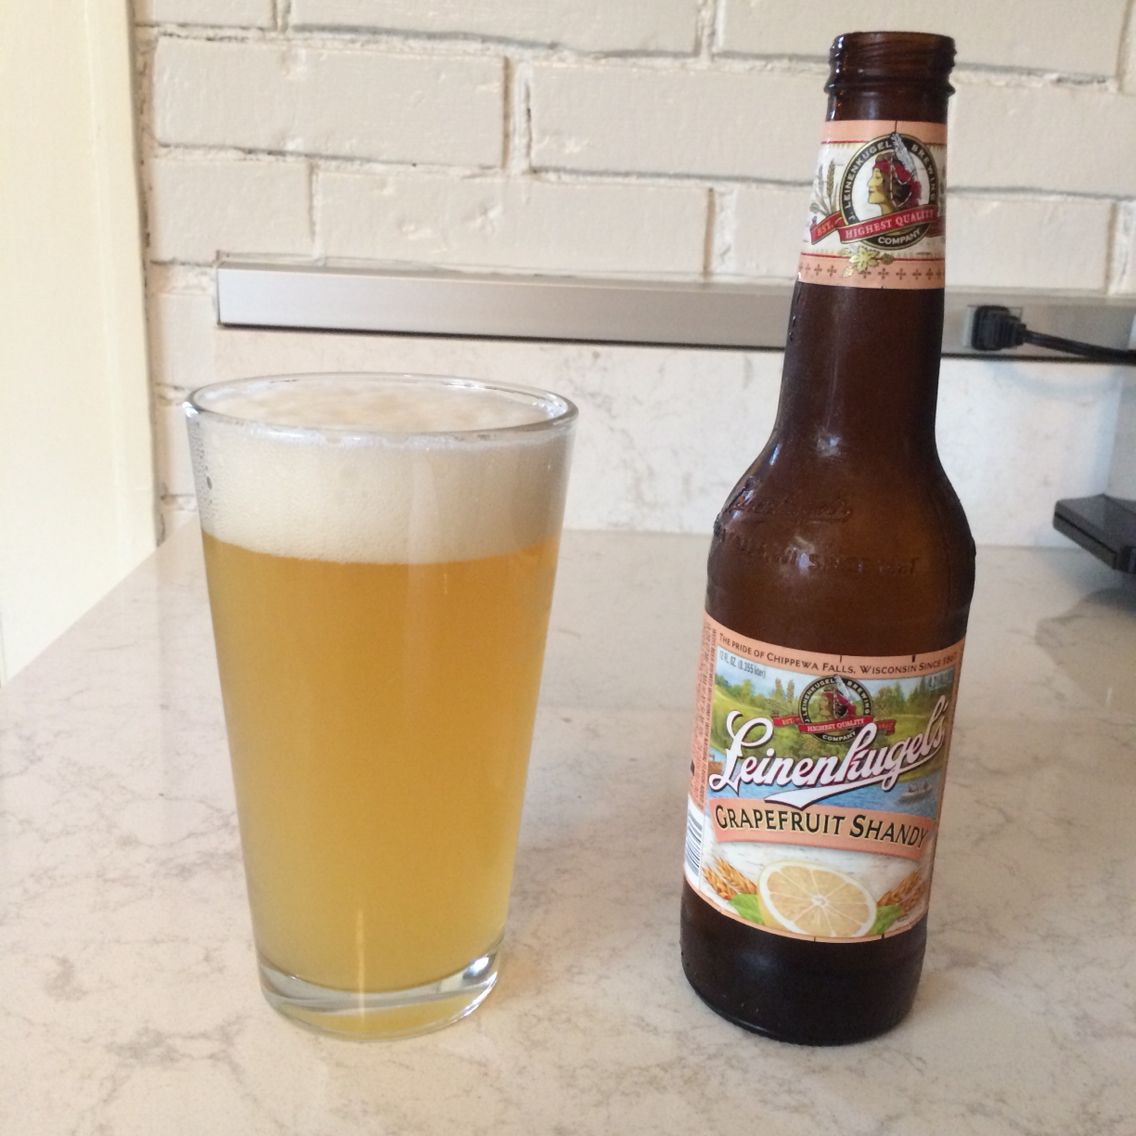 Where to buy leinenkugel s grapefruit shandy - Leinenkugel S Grapefruit Shandy Leine S Newest Addition To Their Shandy Line May Be My Favorite